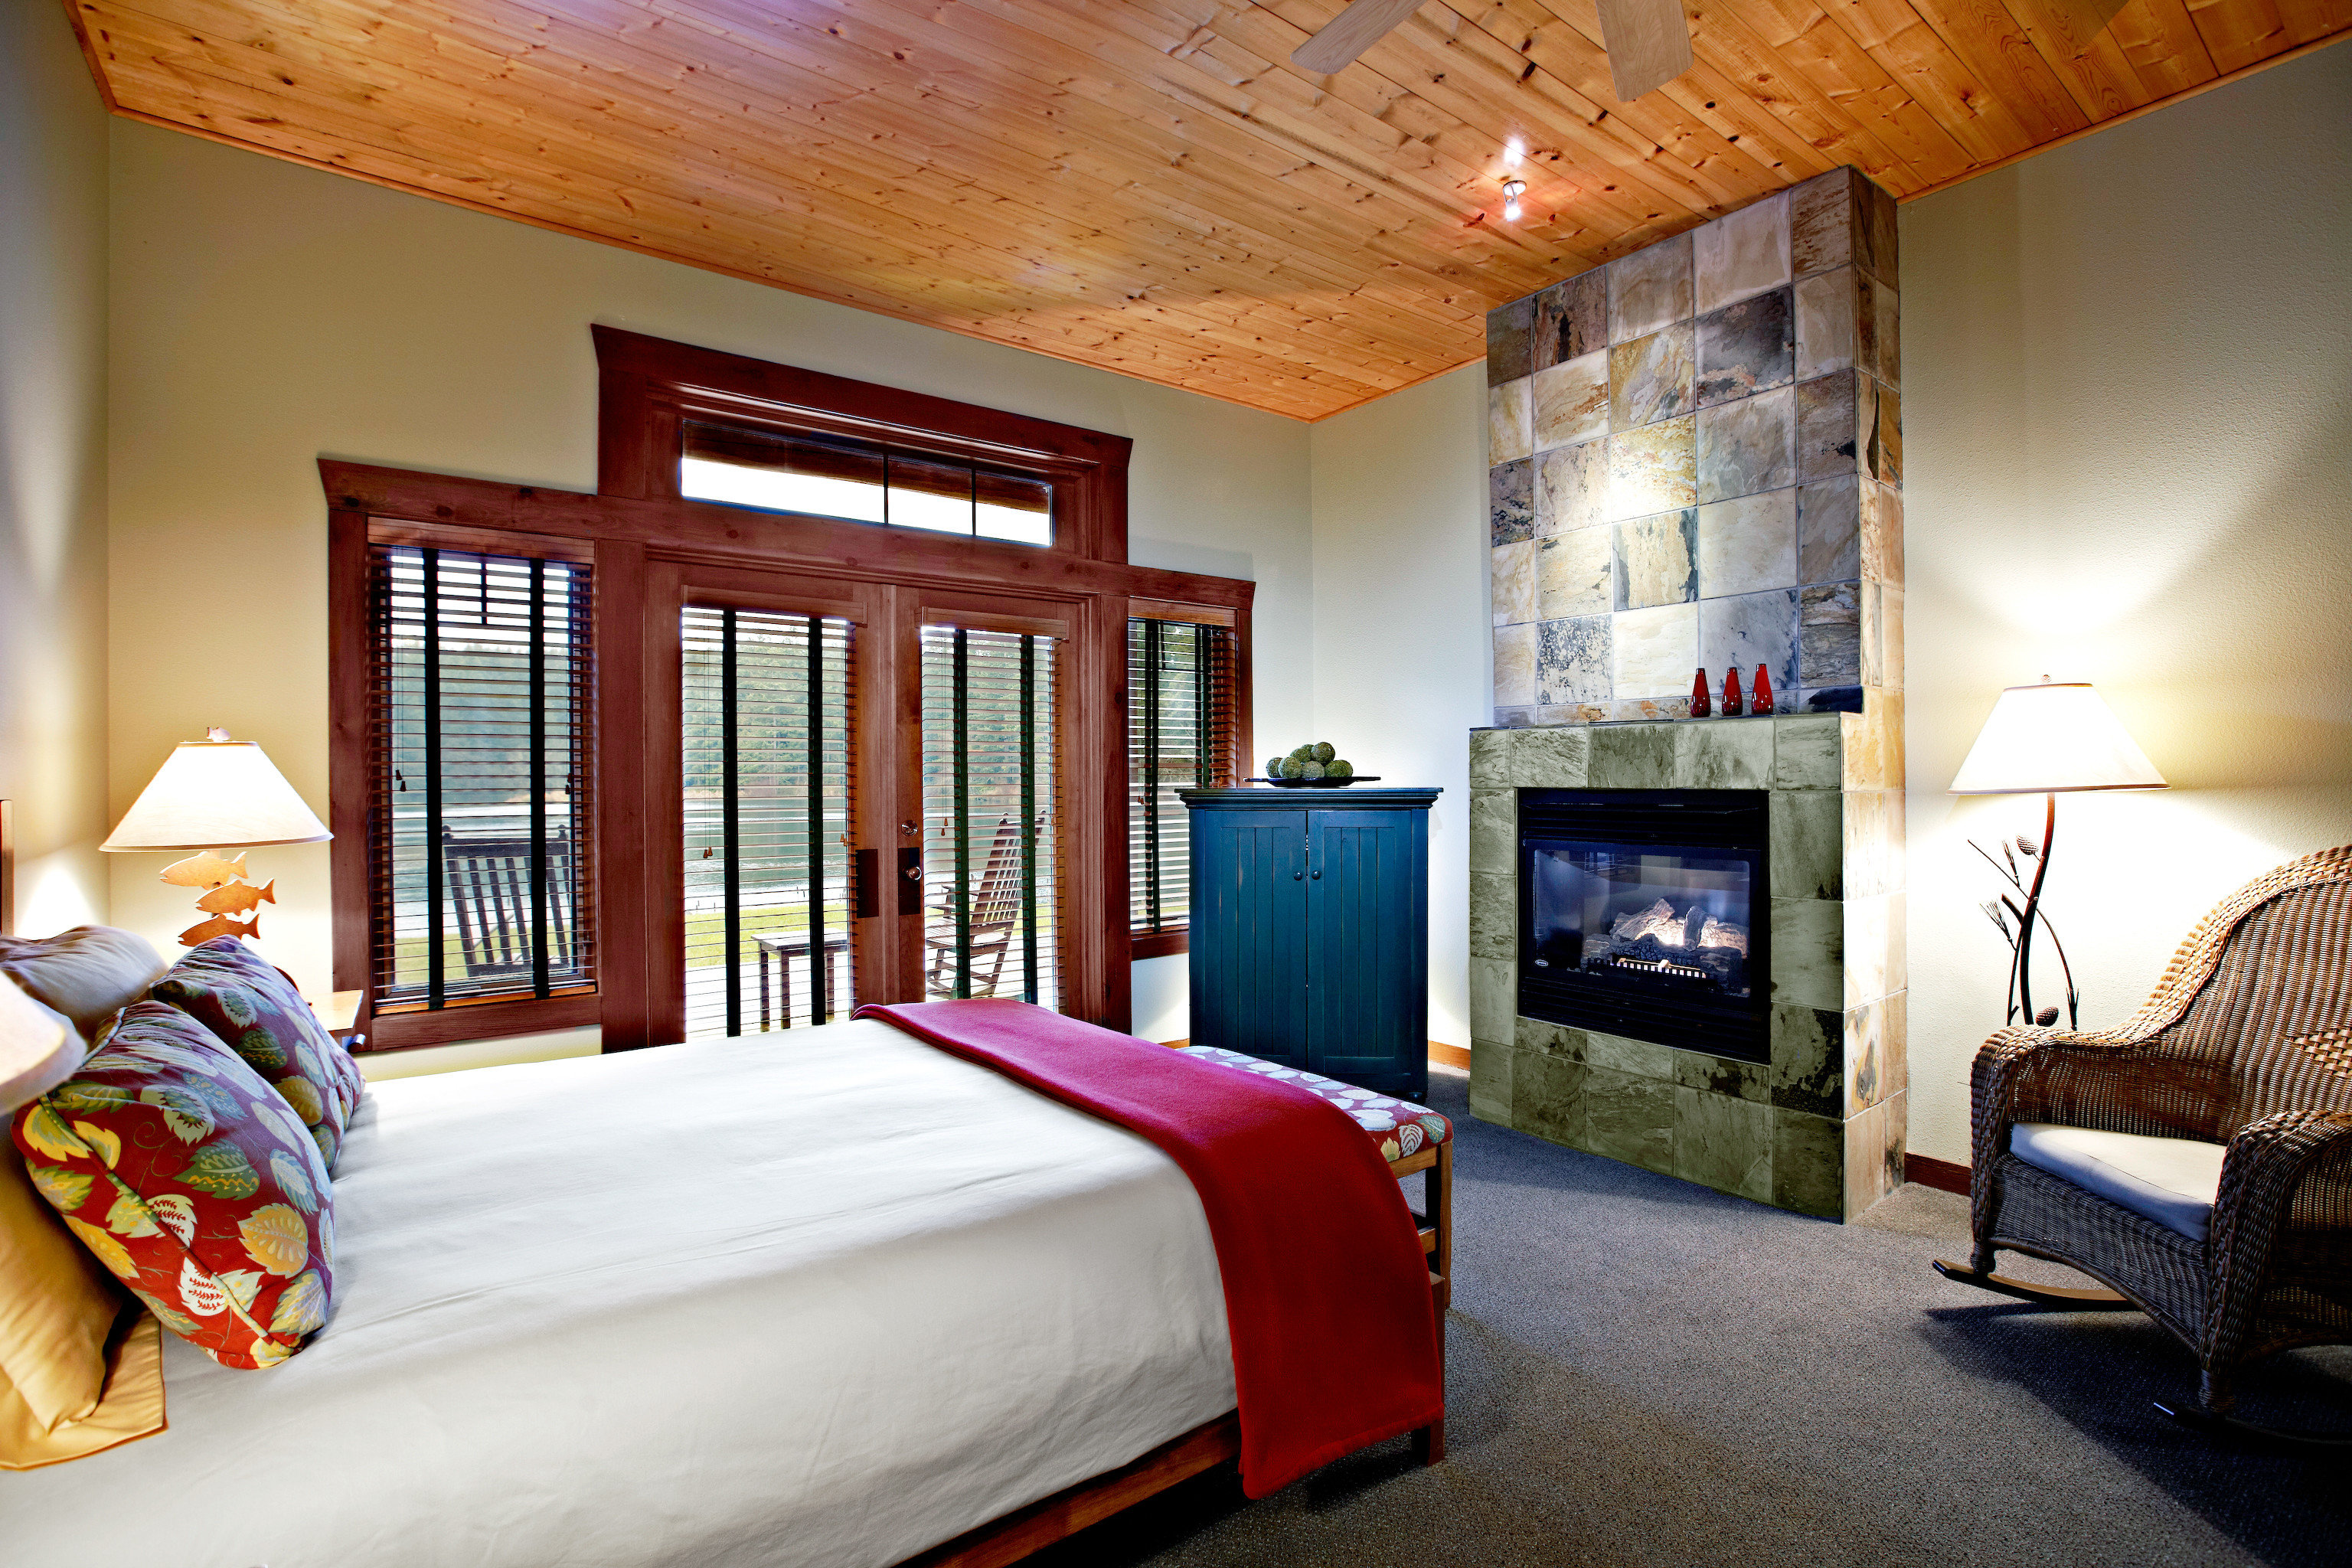 Bedroom Fireplace Lodge Resort Rustic Scenic views sofa property house home living room cottage pillow farmhouse